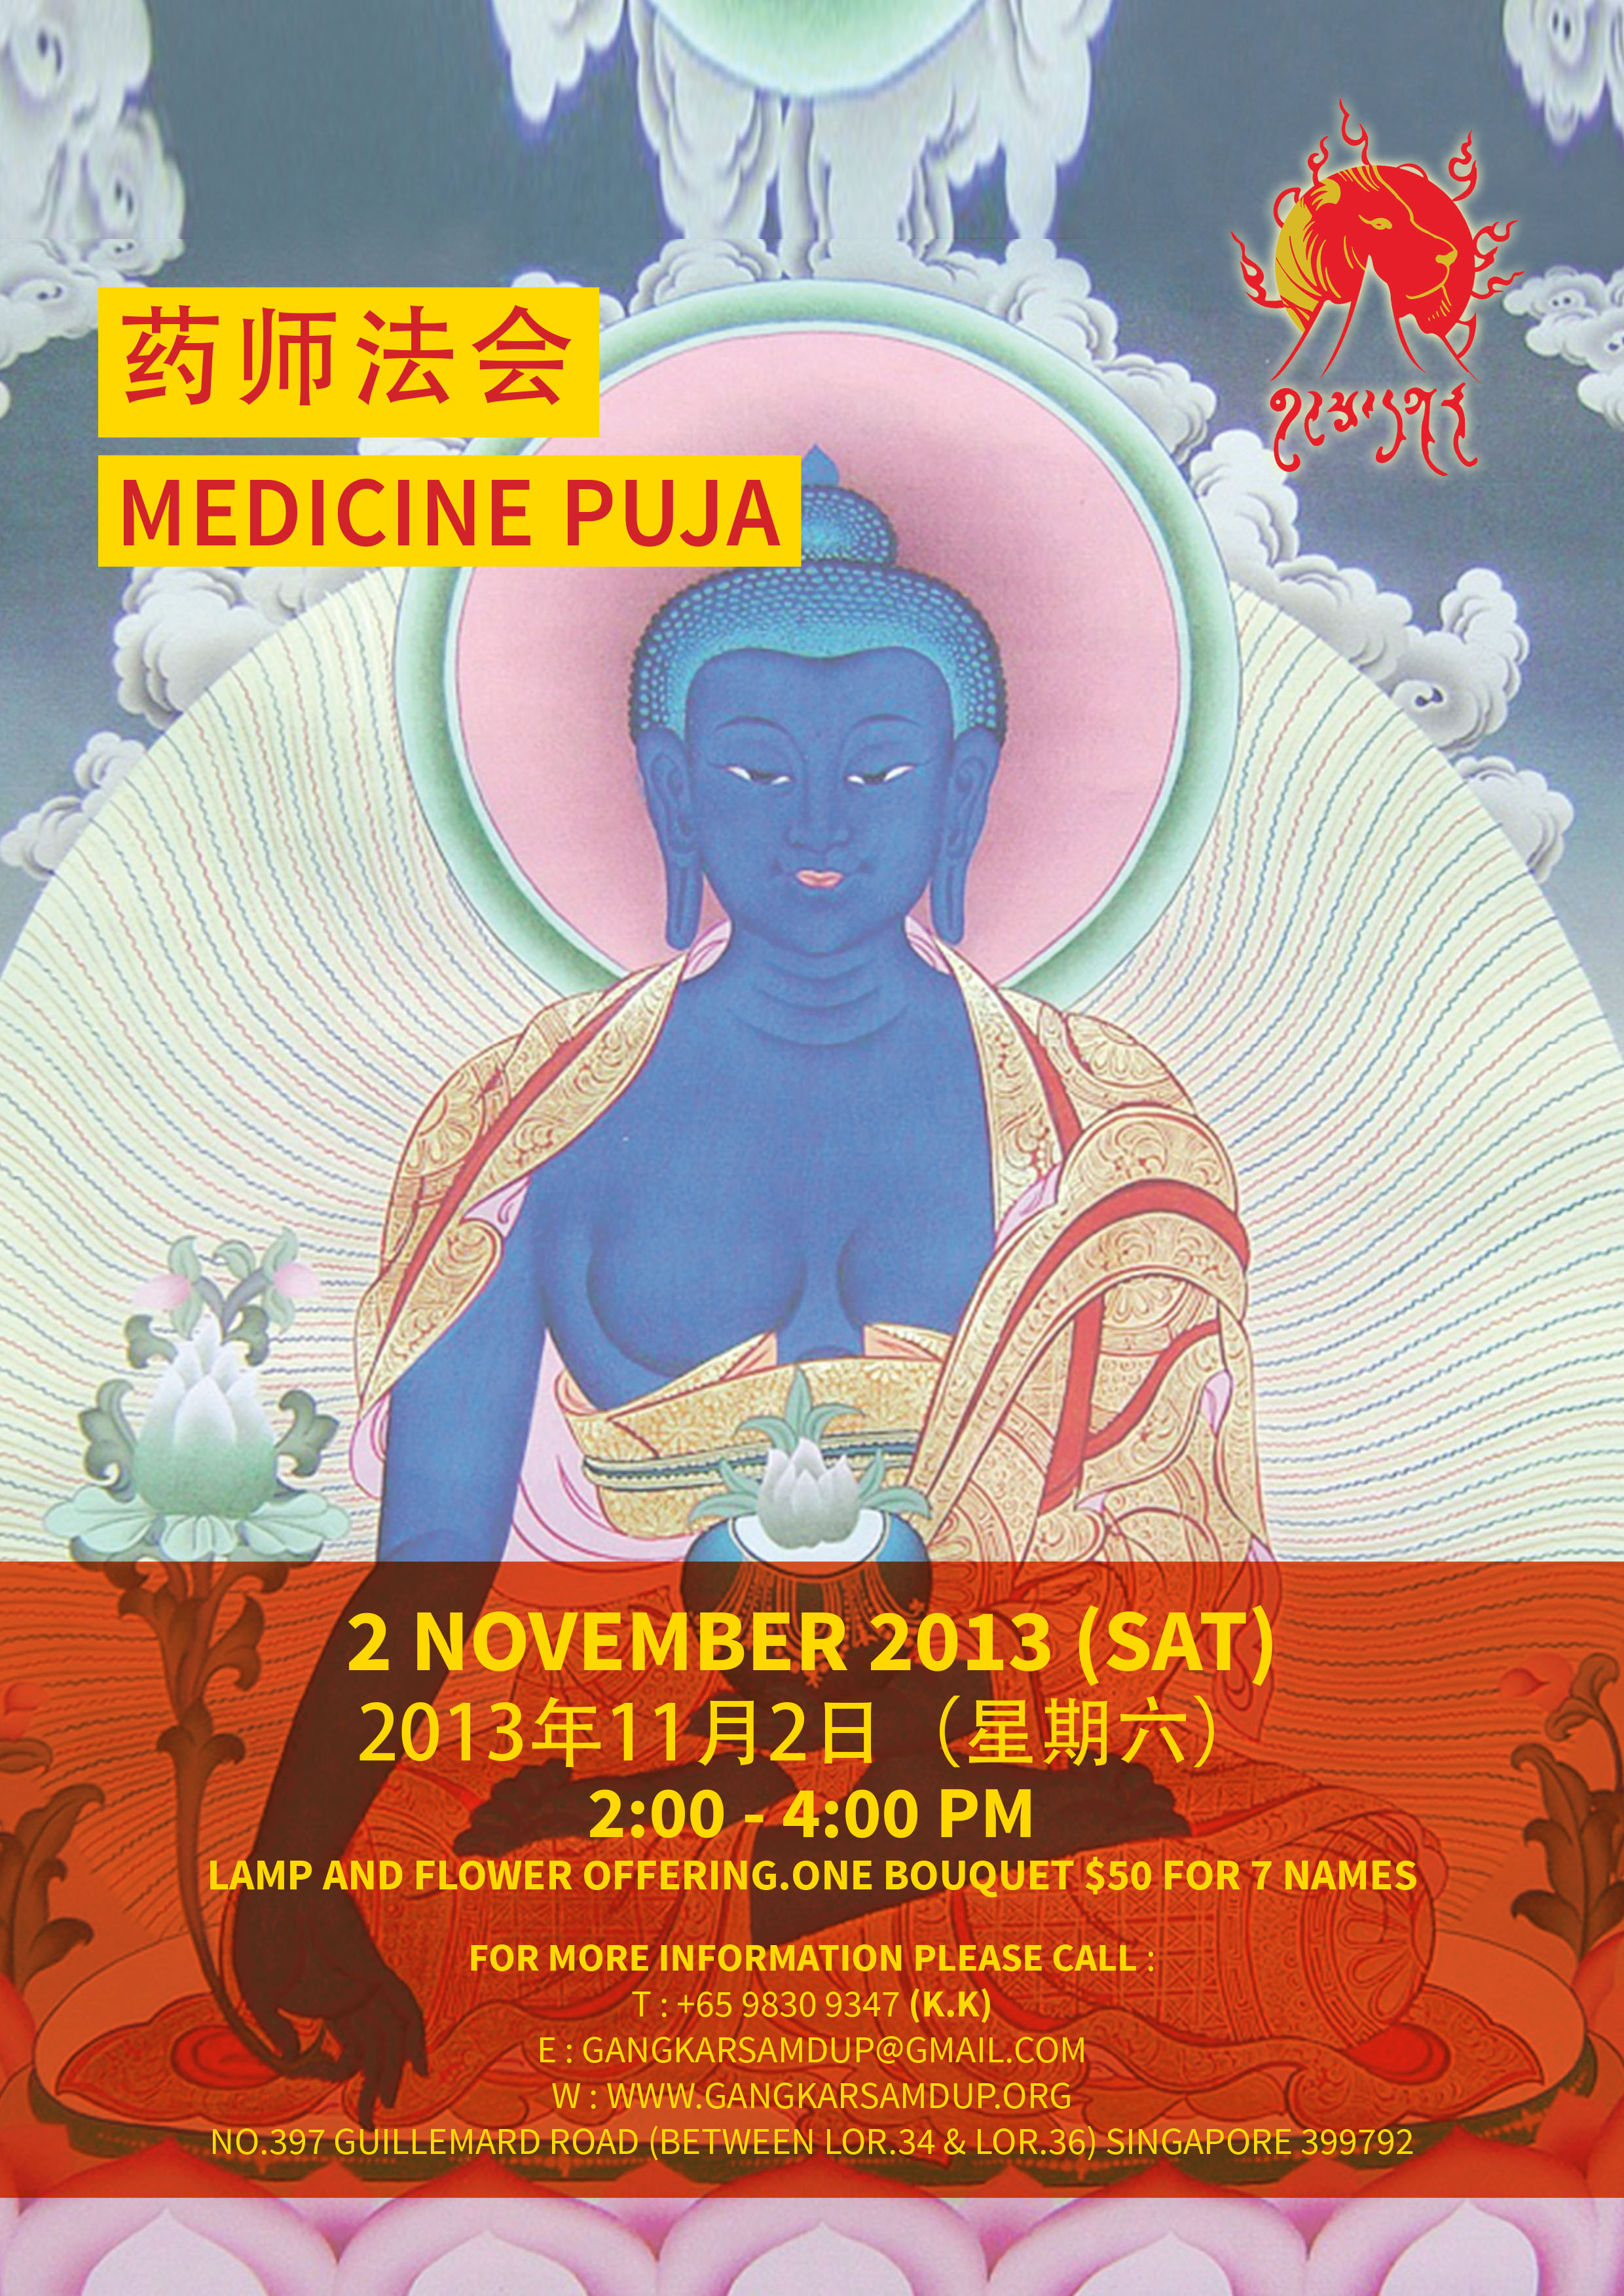 Medicine Puja - Welcome all to join us.